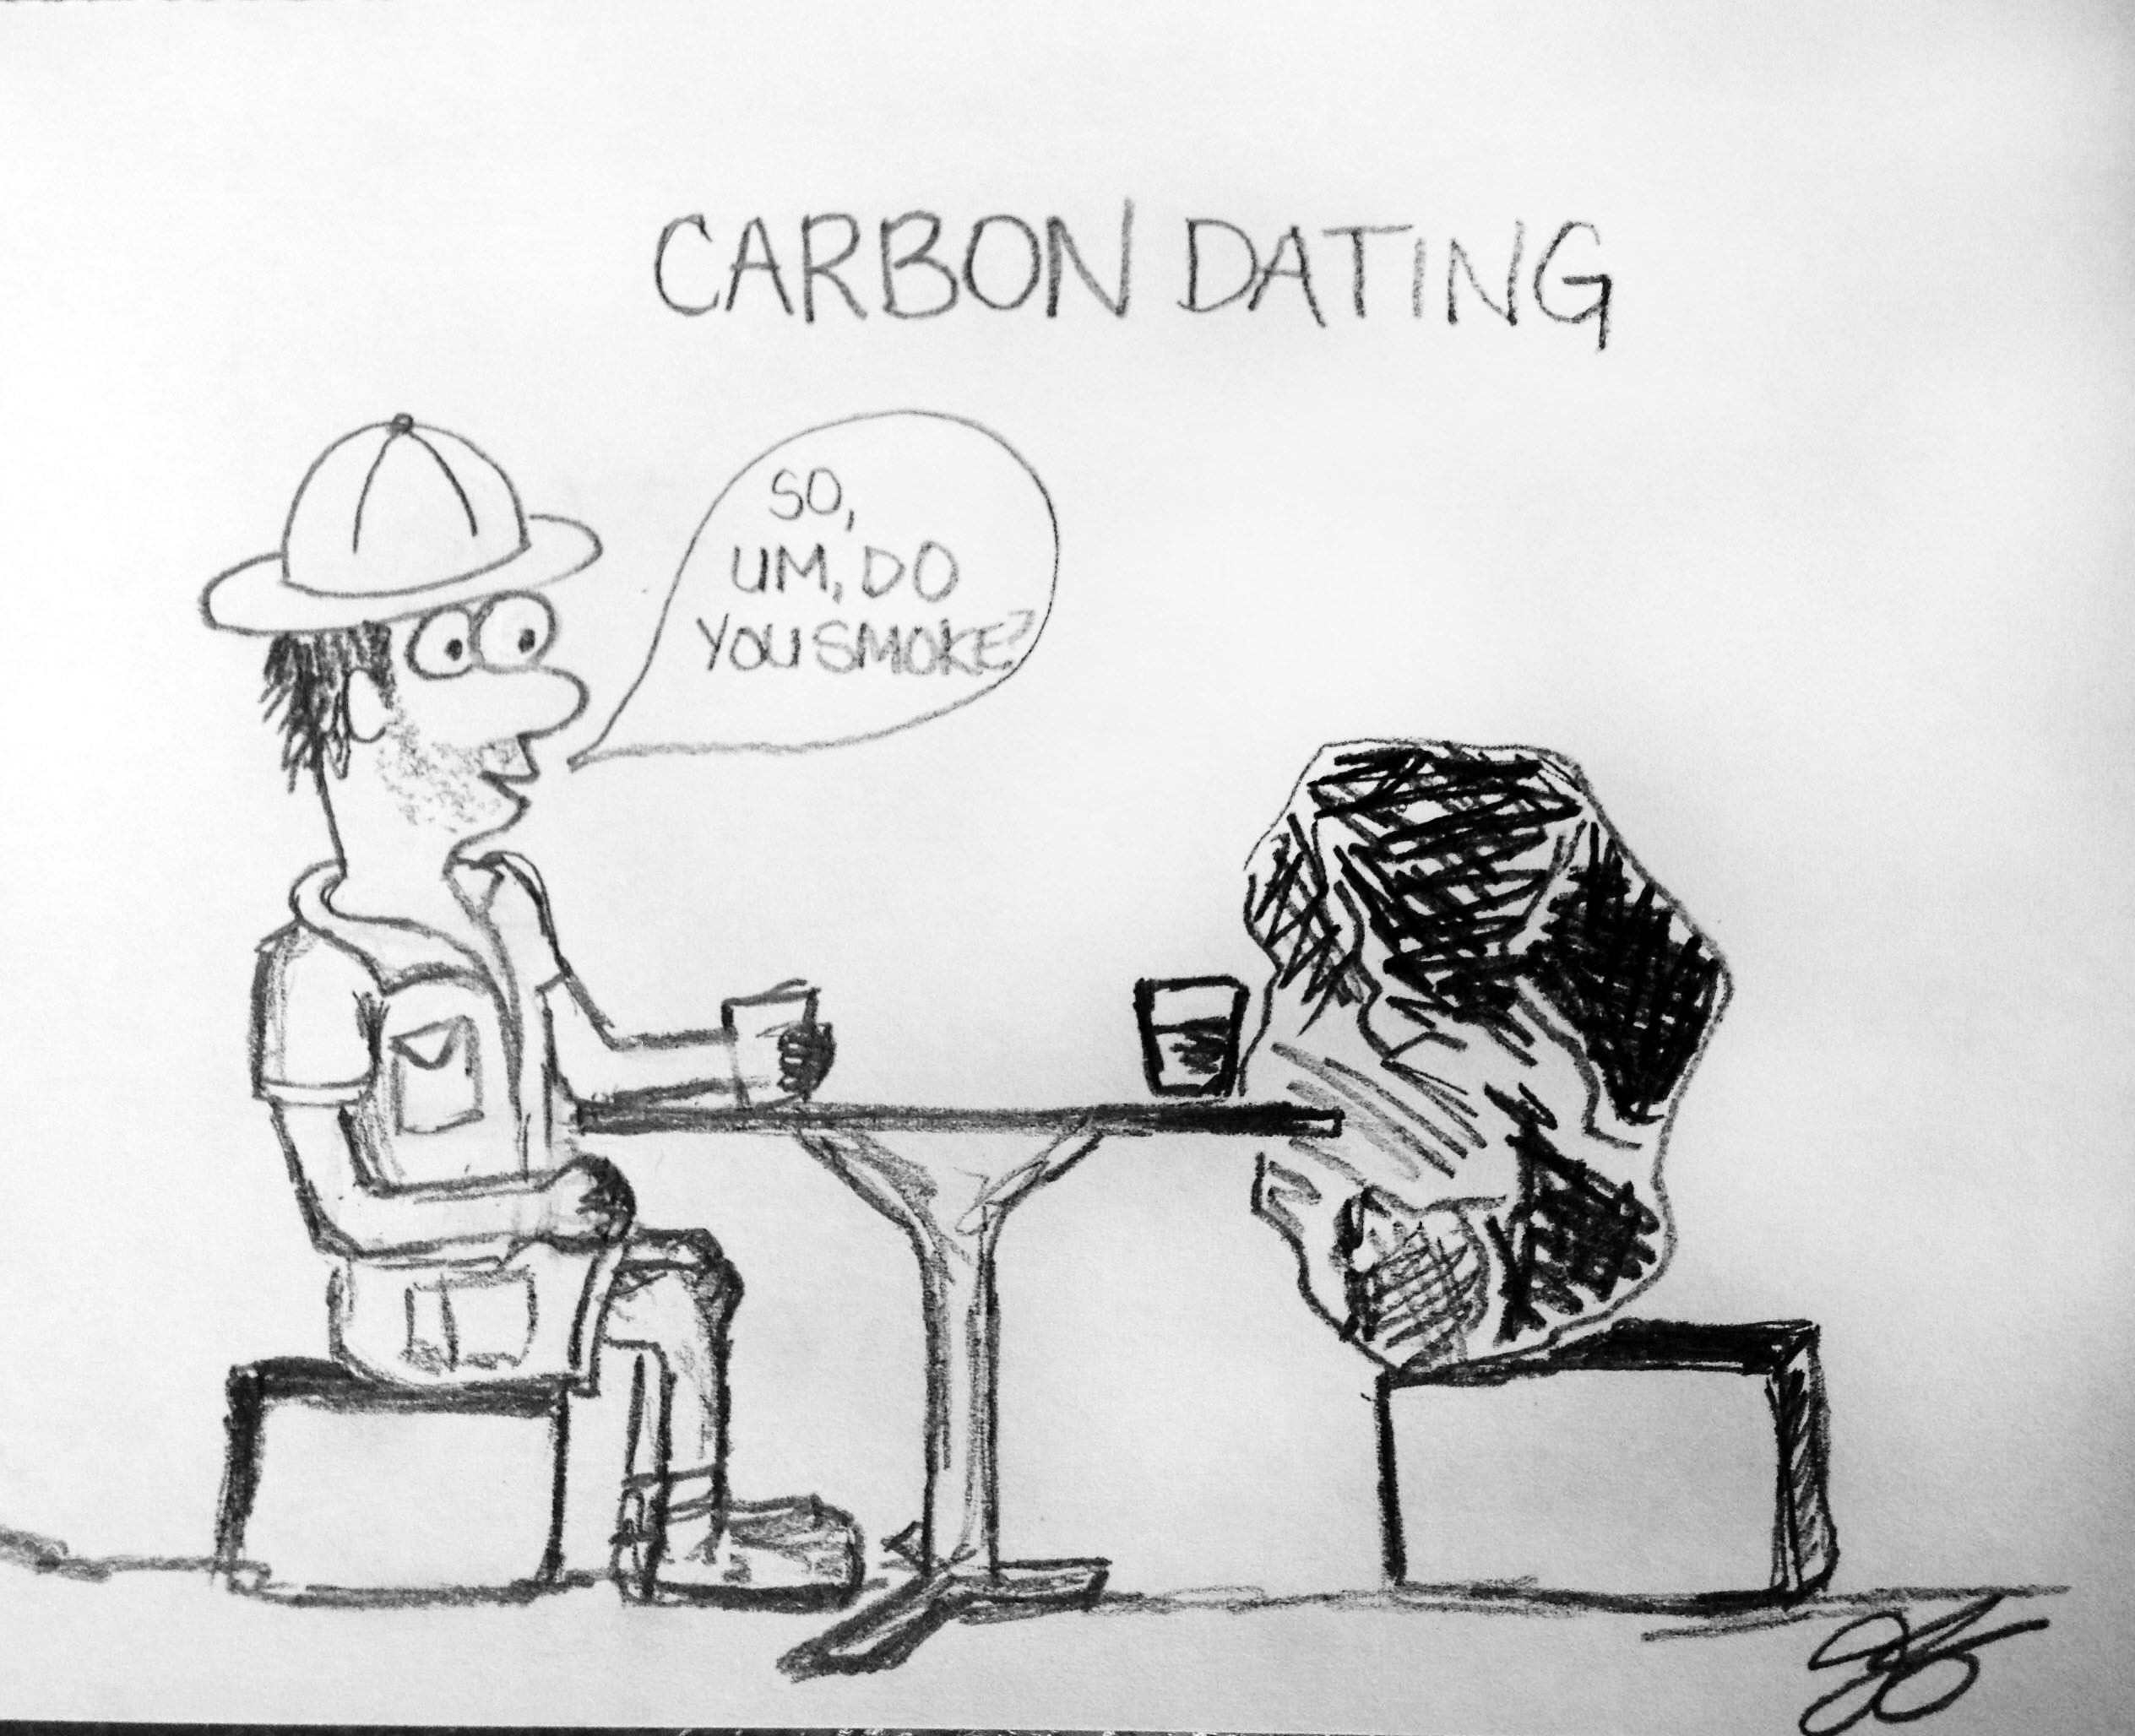 carbon dating used in archaeology Radiocarbon dating is a powerful tool used in archaeology how has radiocarbon dating changed the field of archaeology.